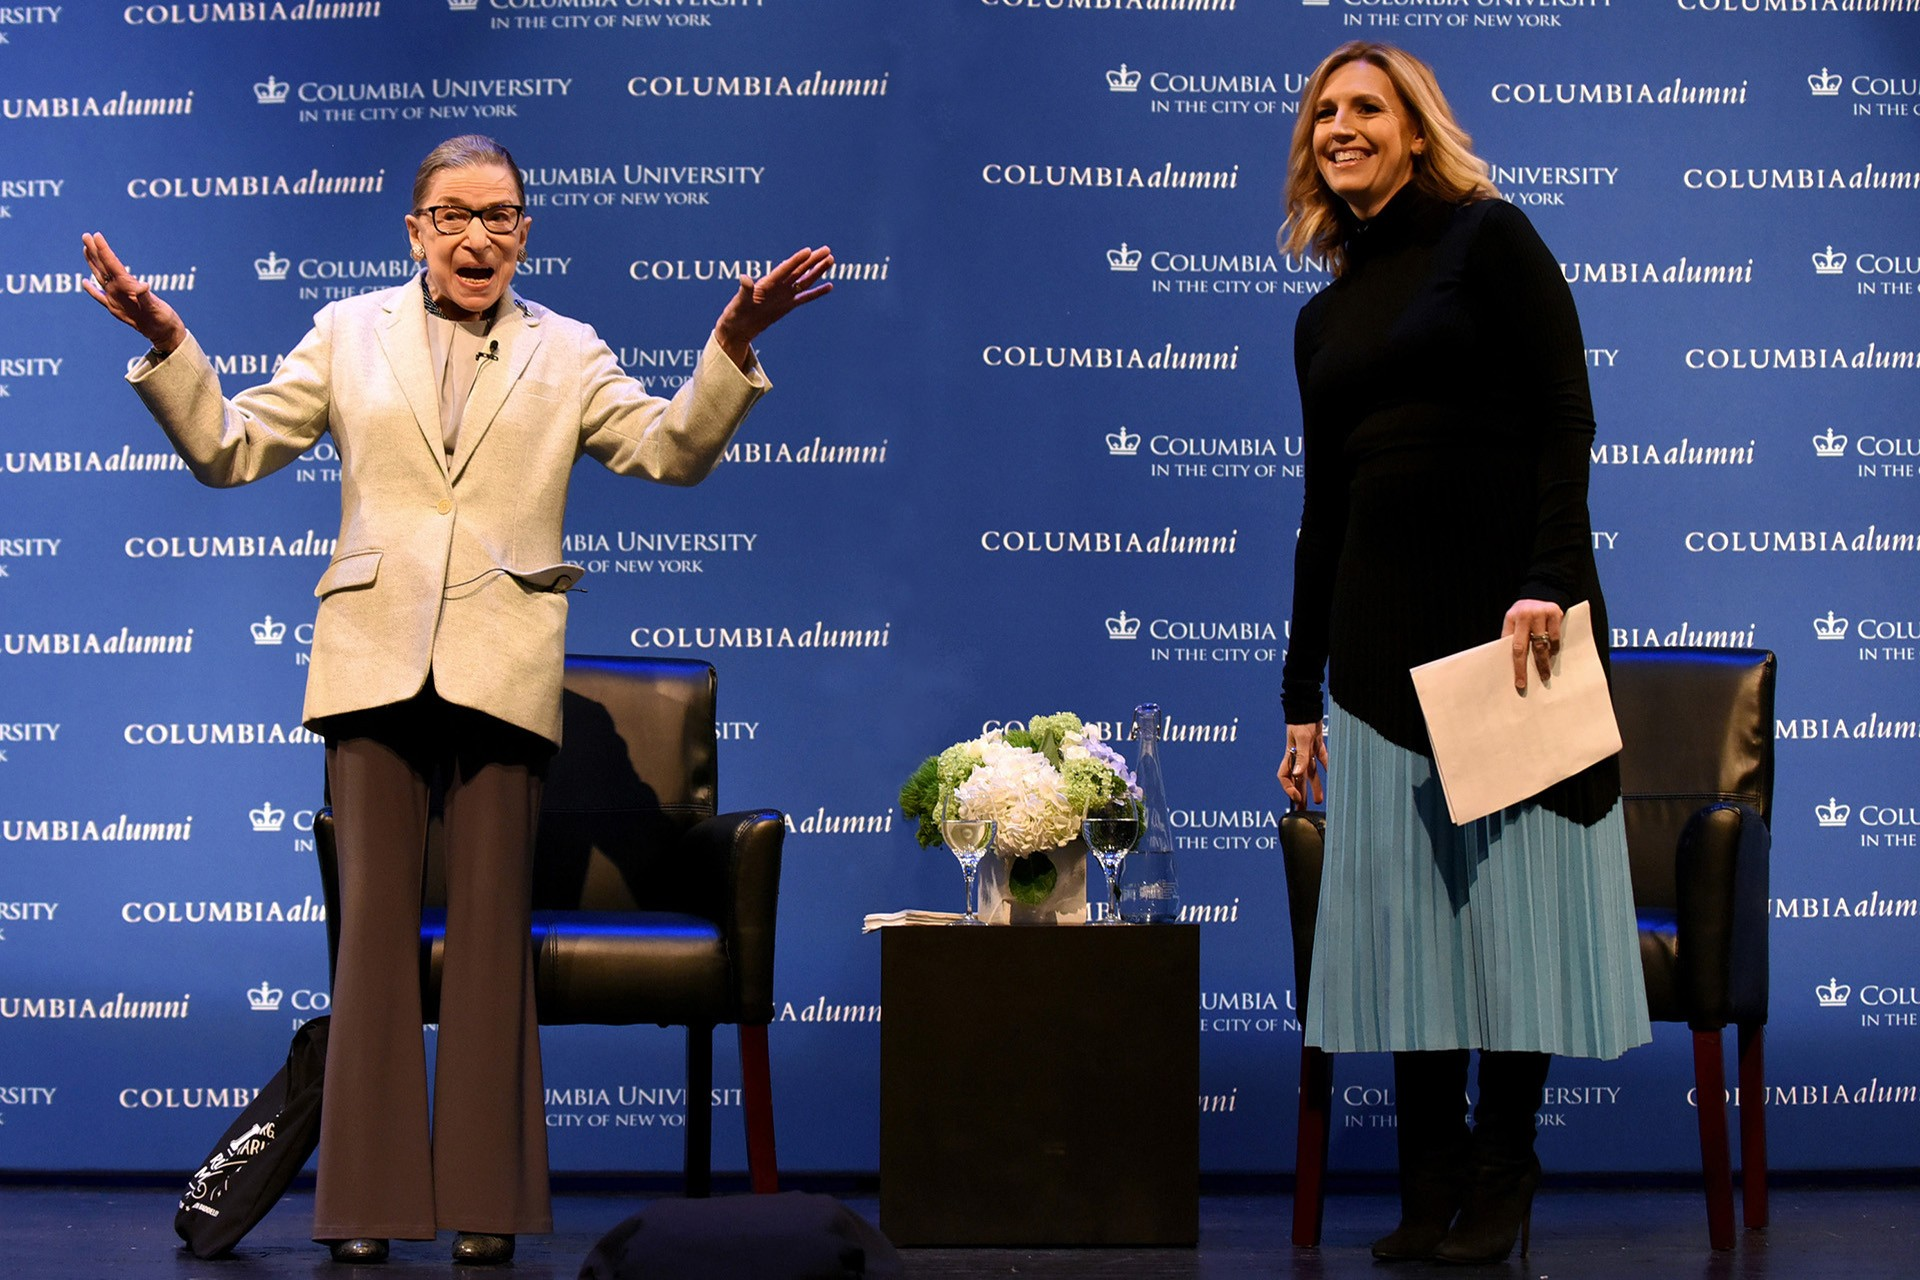 Supreme Court Justice Ruth Bader Ginsberg speaks to Columbia Alumni.